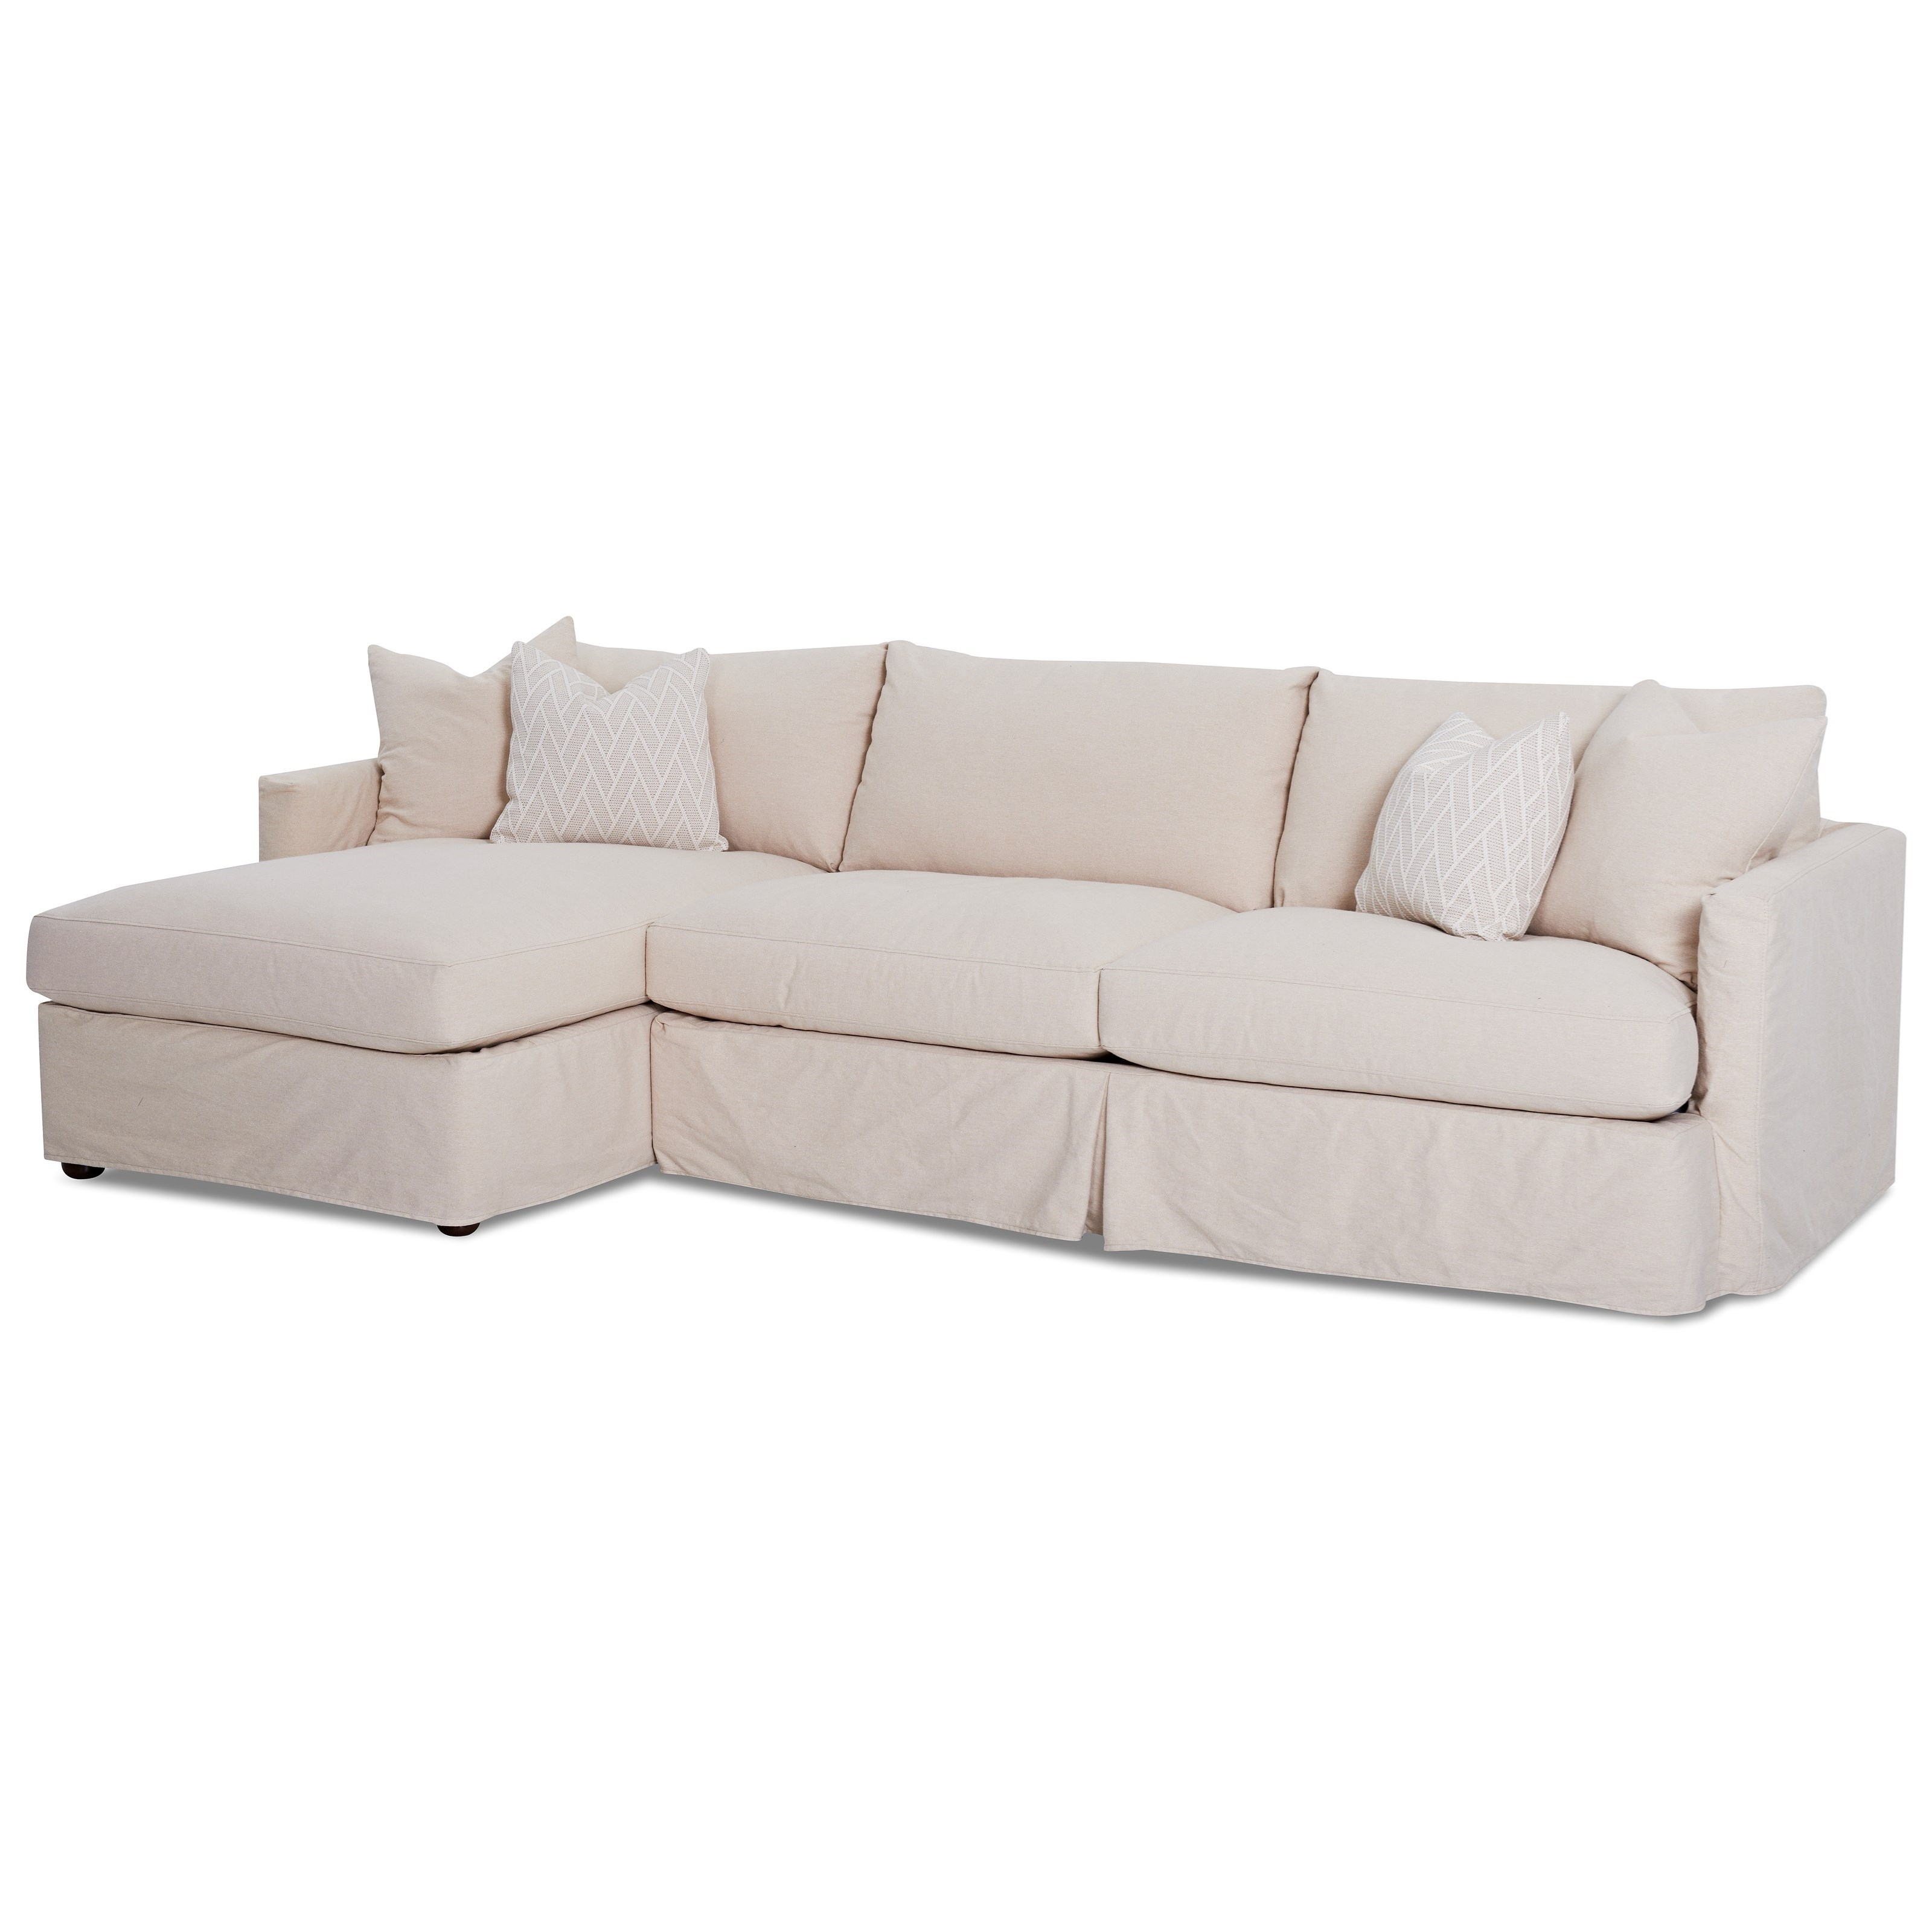 Laf Chaise Sectional Sofa   Baci Living Room Intended For Malbry Point 3 Piece Sectionals With Raf Chaise (View 17 of 25)